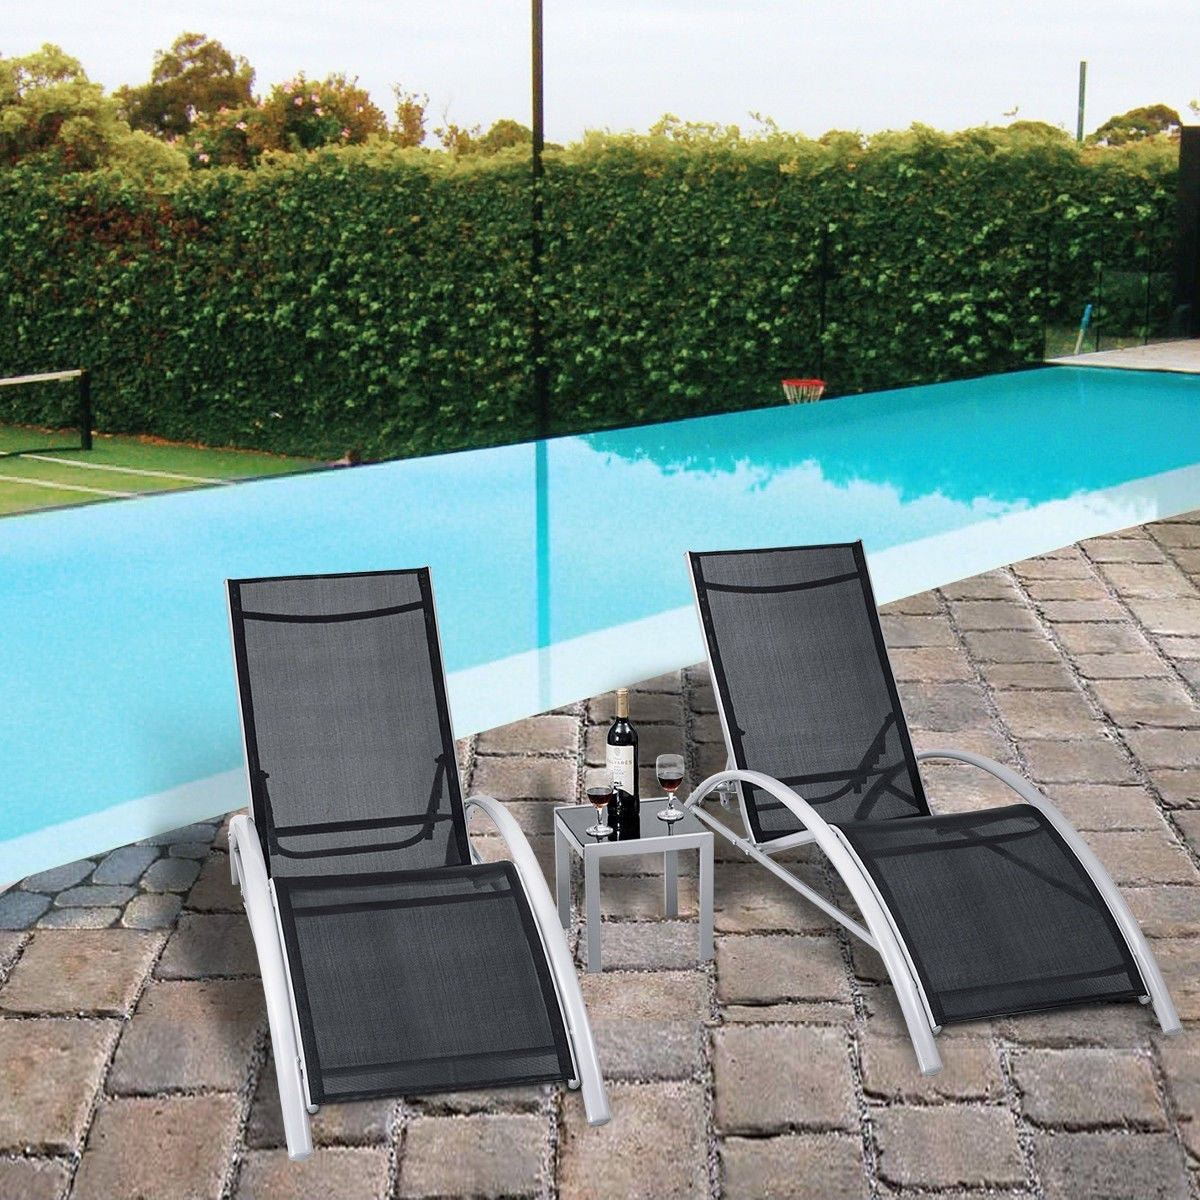 Shop 3 Pcs Outdoor Patio Pool Lounger Set Reclining Garden Chairs